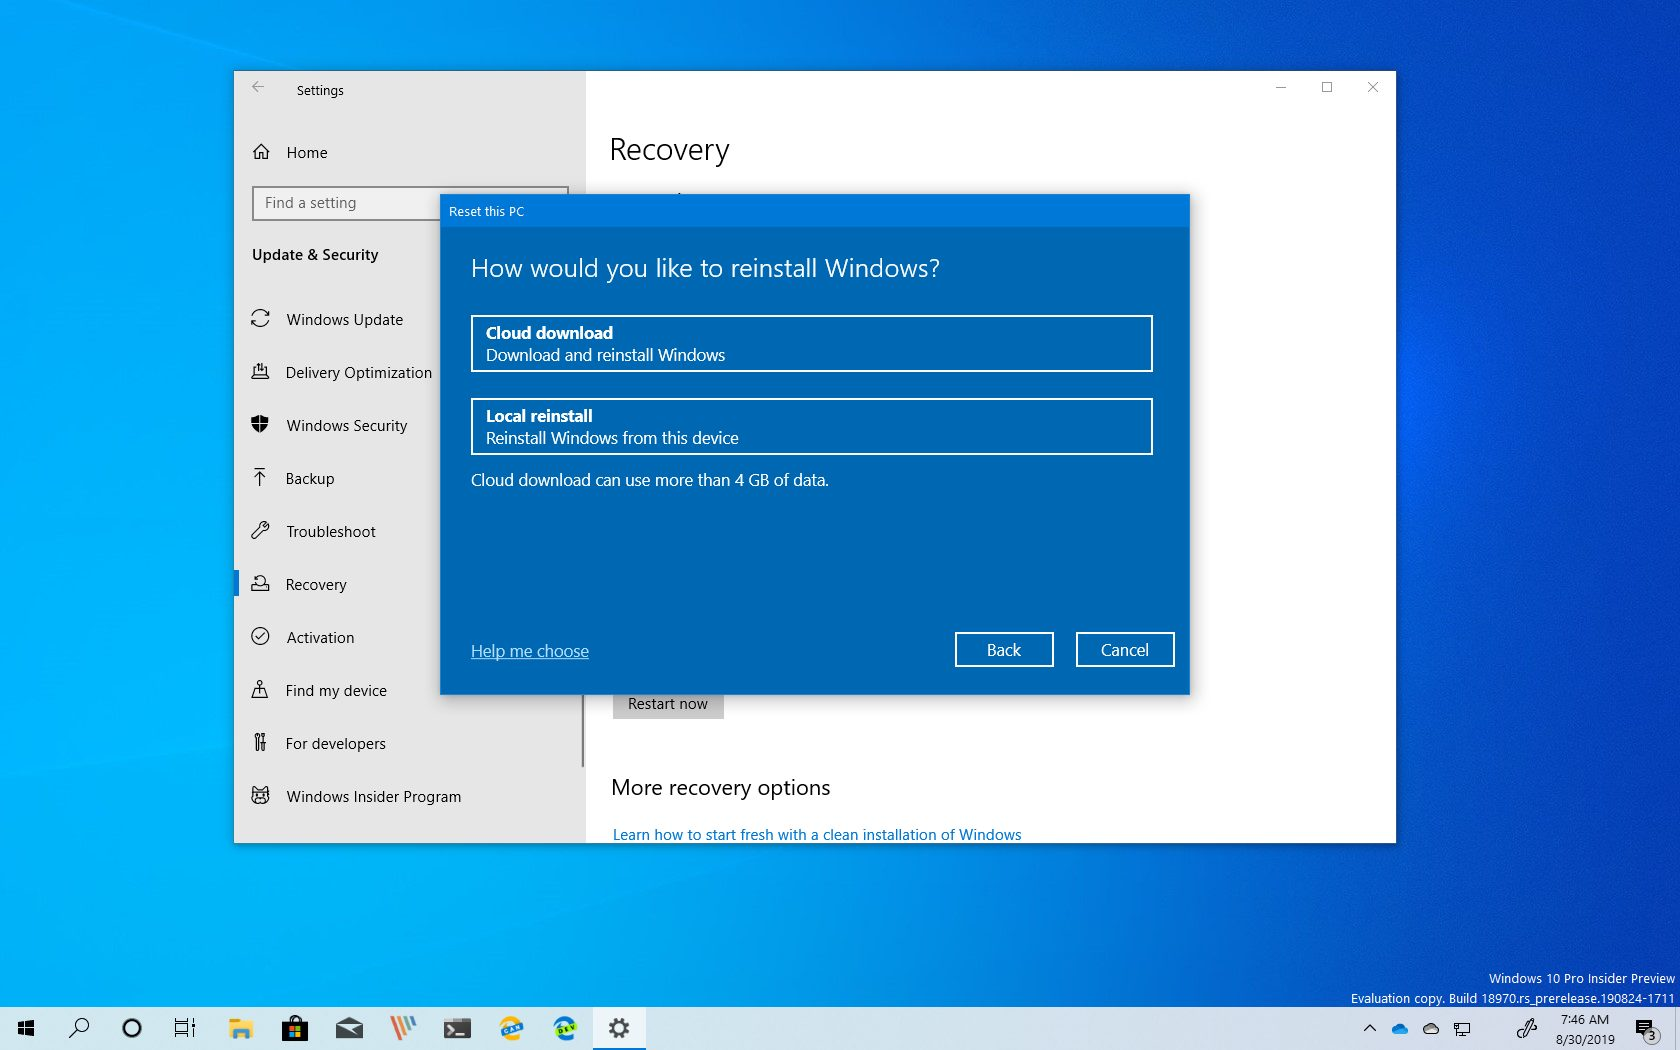 Reset this PC with Cloud Download option